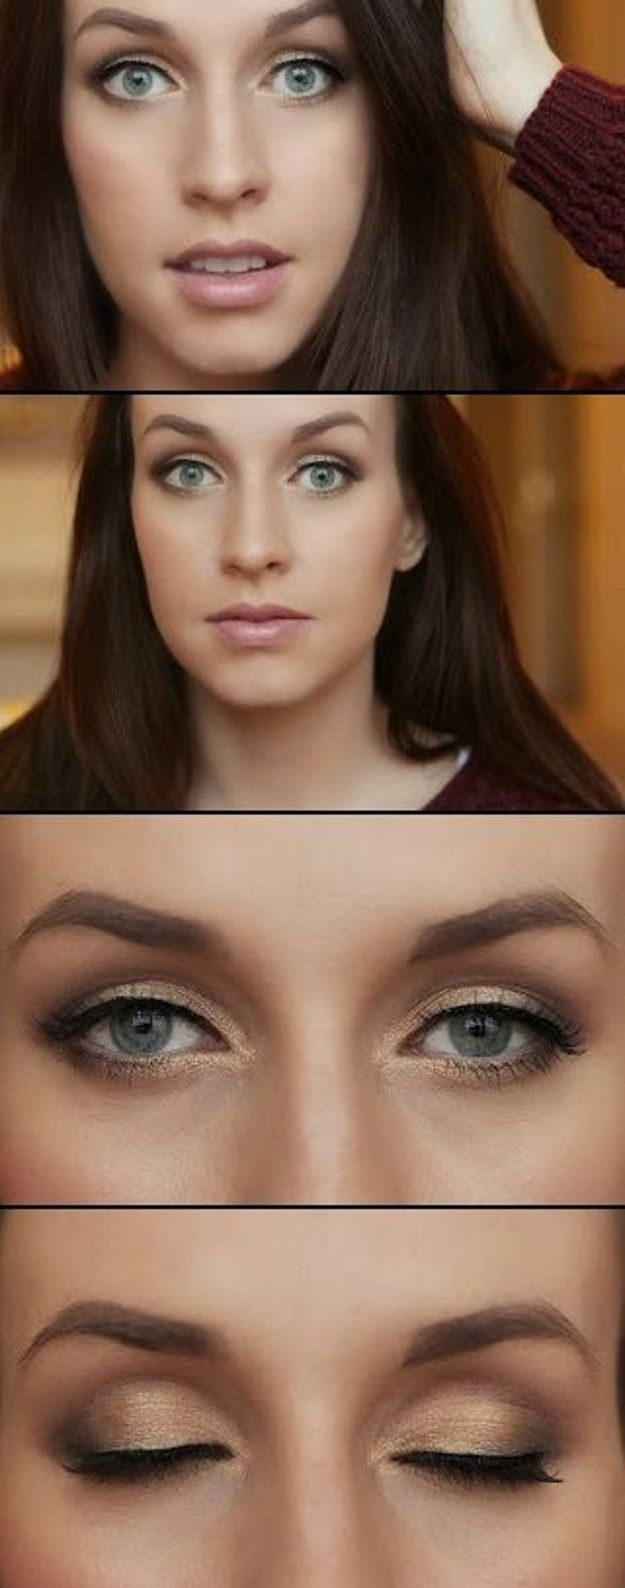 How to Apply Natural Eye Makeup for Work | Makeup for Blue Eyes by Makeup Tutorials at | Makeup Tutorials http://makeuptutorials.com/10-minute-makeup-tutorials-for-work